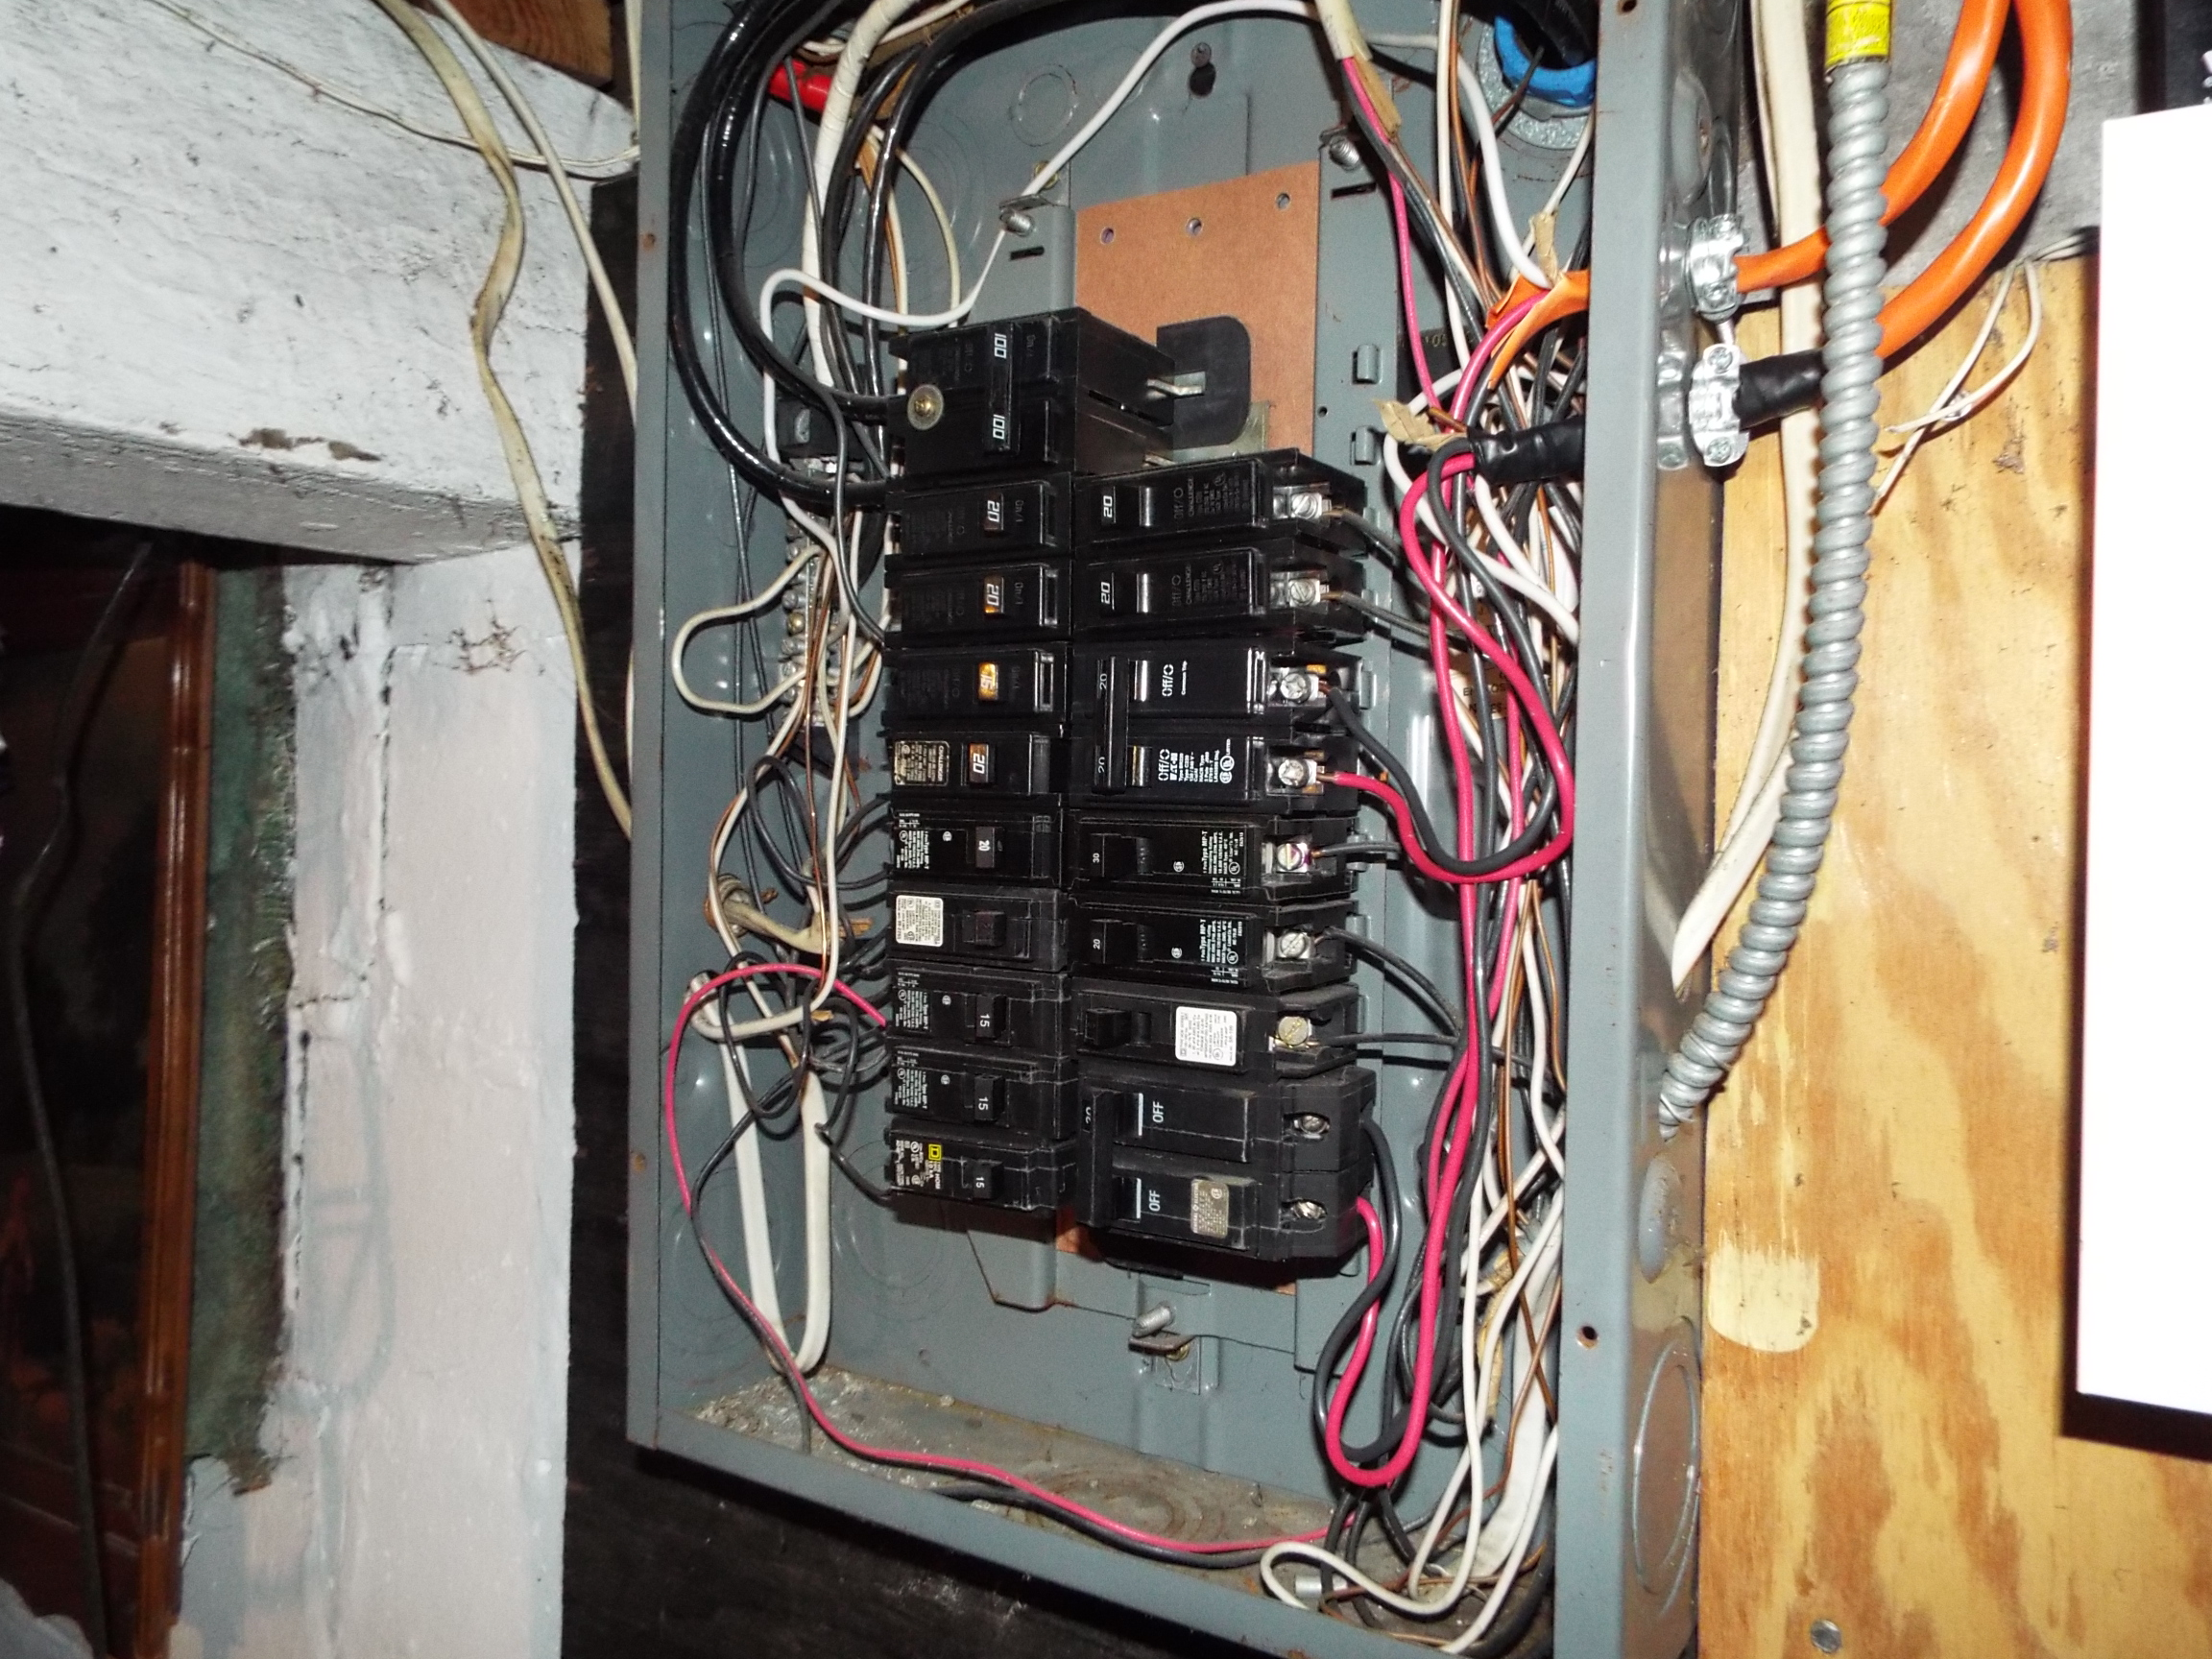 Residential Electrical Problems Part 1 Nj Licensed Home Breaker Box Fuse Types 557 Penn St 072